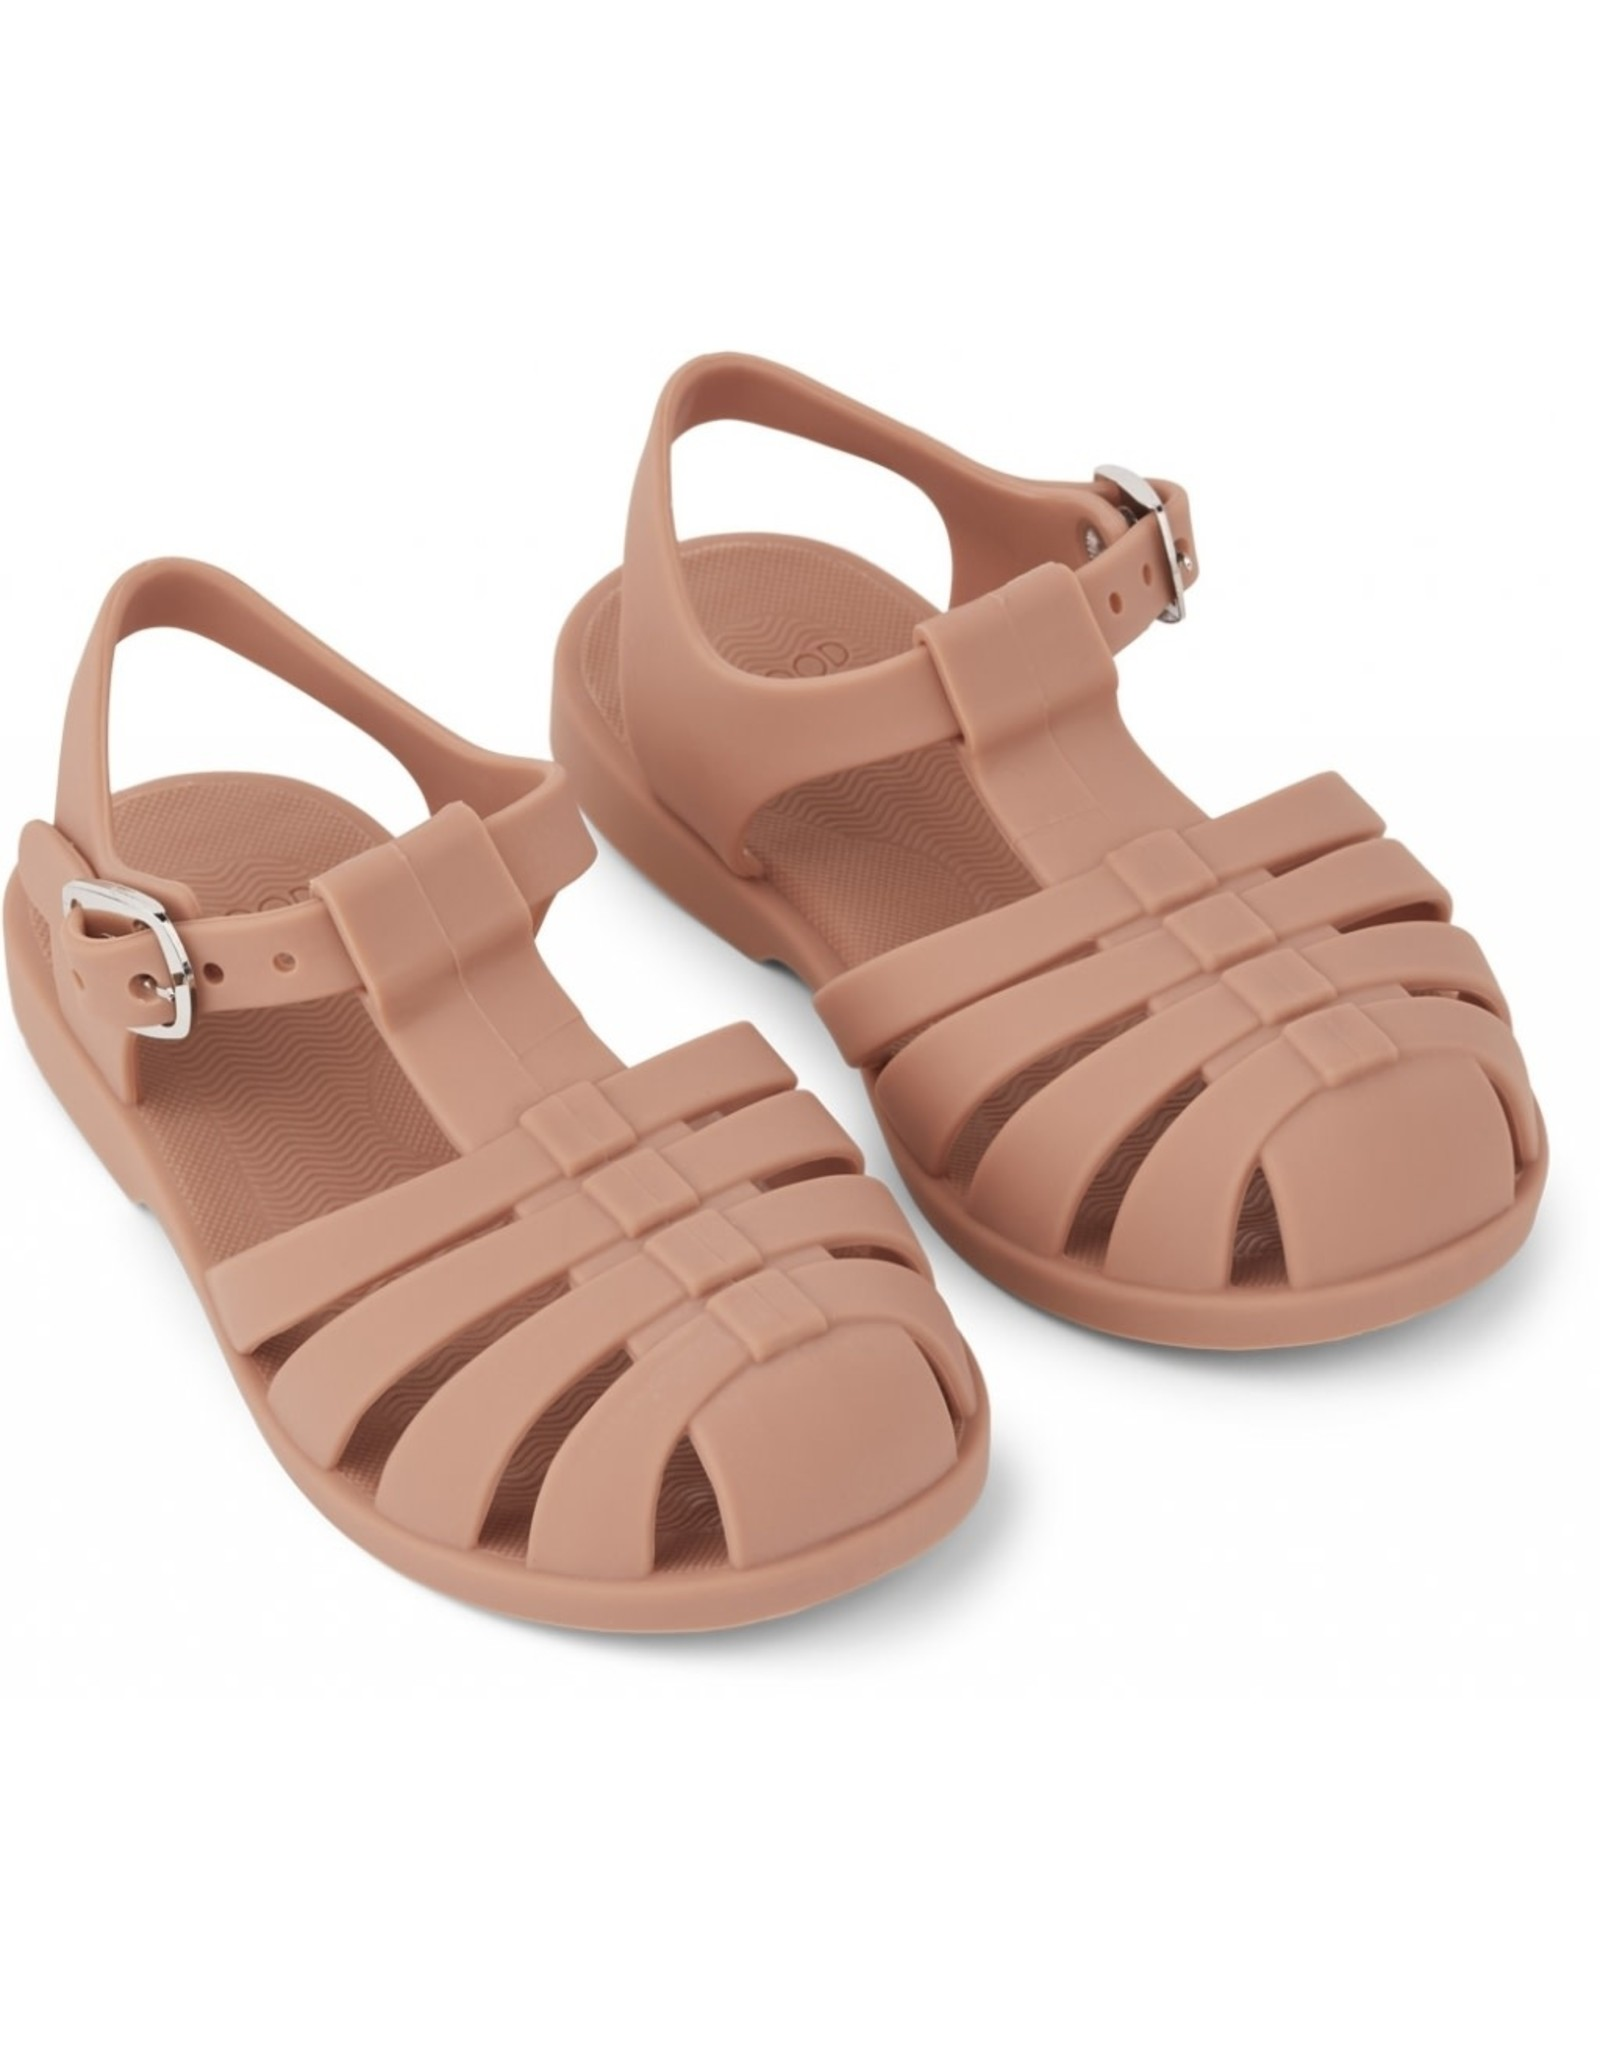 Liewood - Bre Sandals - Tuscany Rose